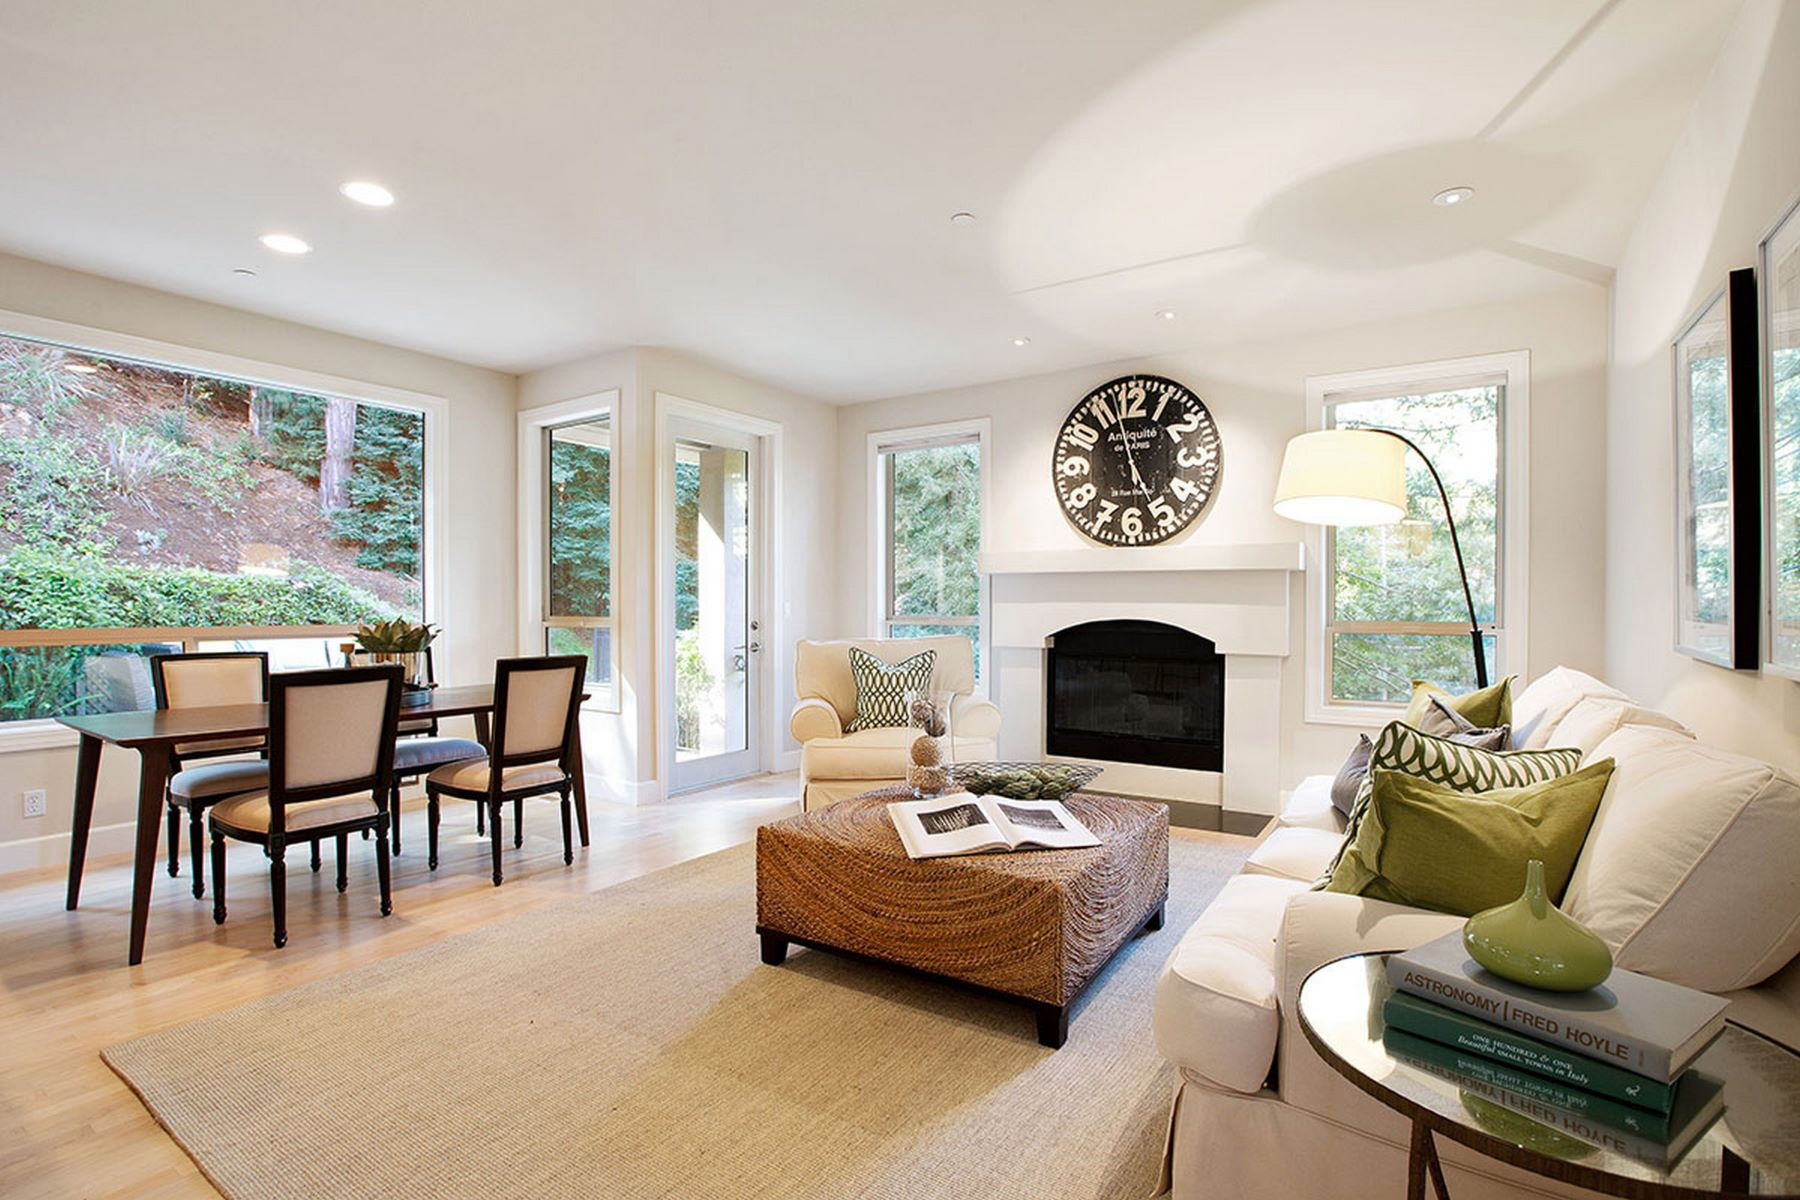 Single Family Home for Sale at Architecturally Stunning Private Estate 255 Ralston Avenue Mill Valley, California 94941 United States